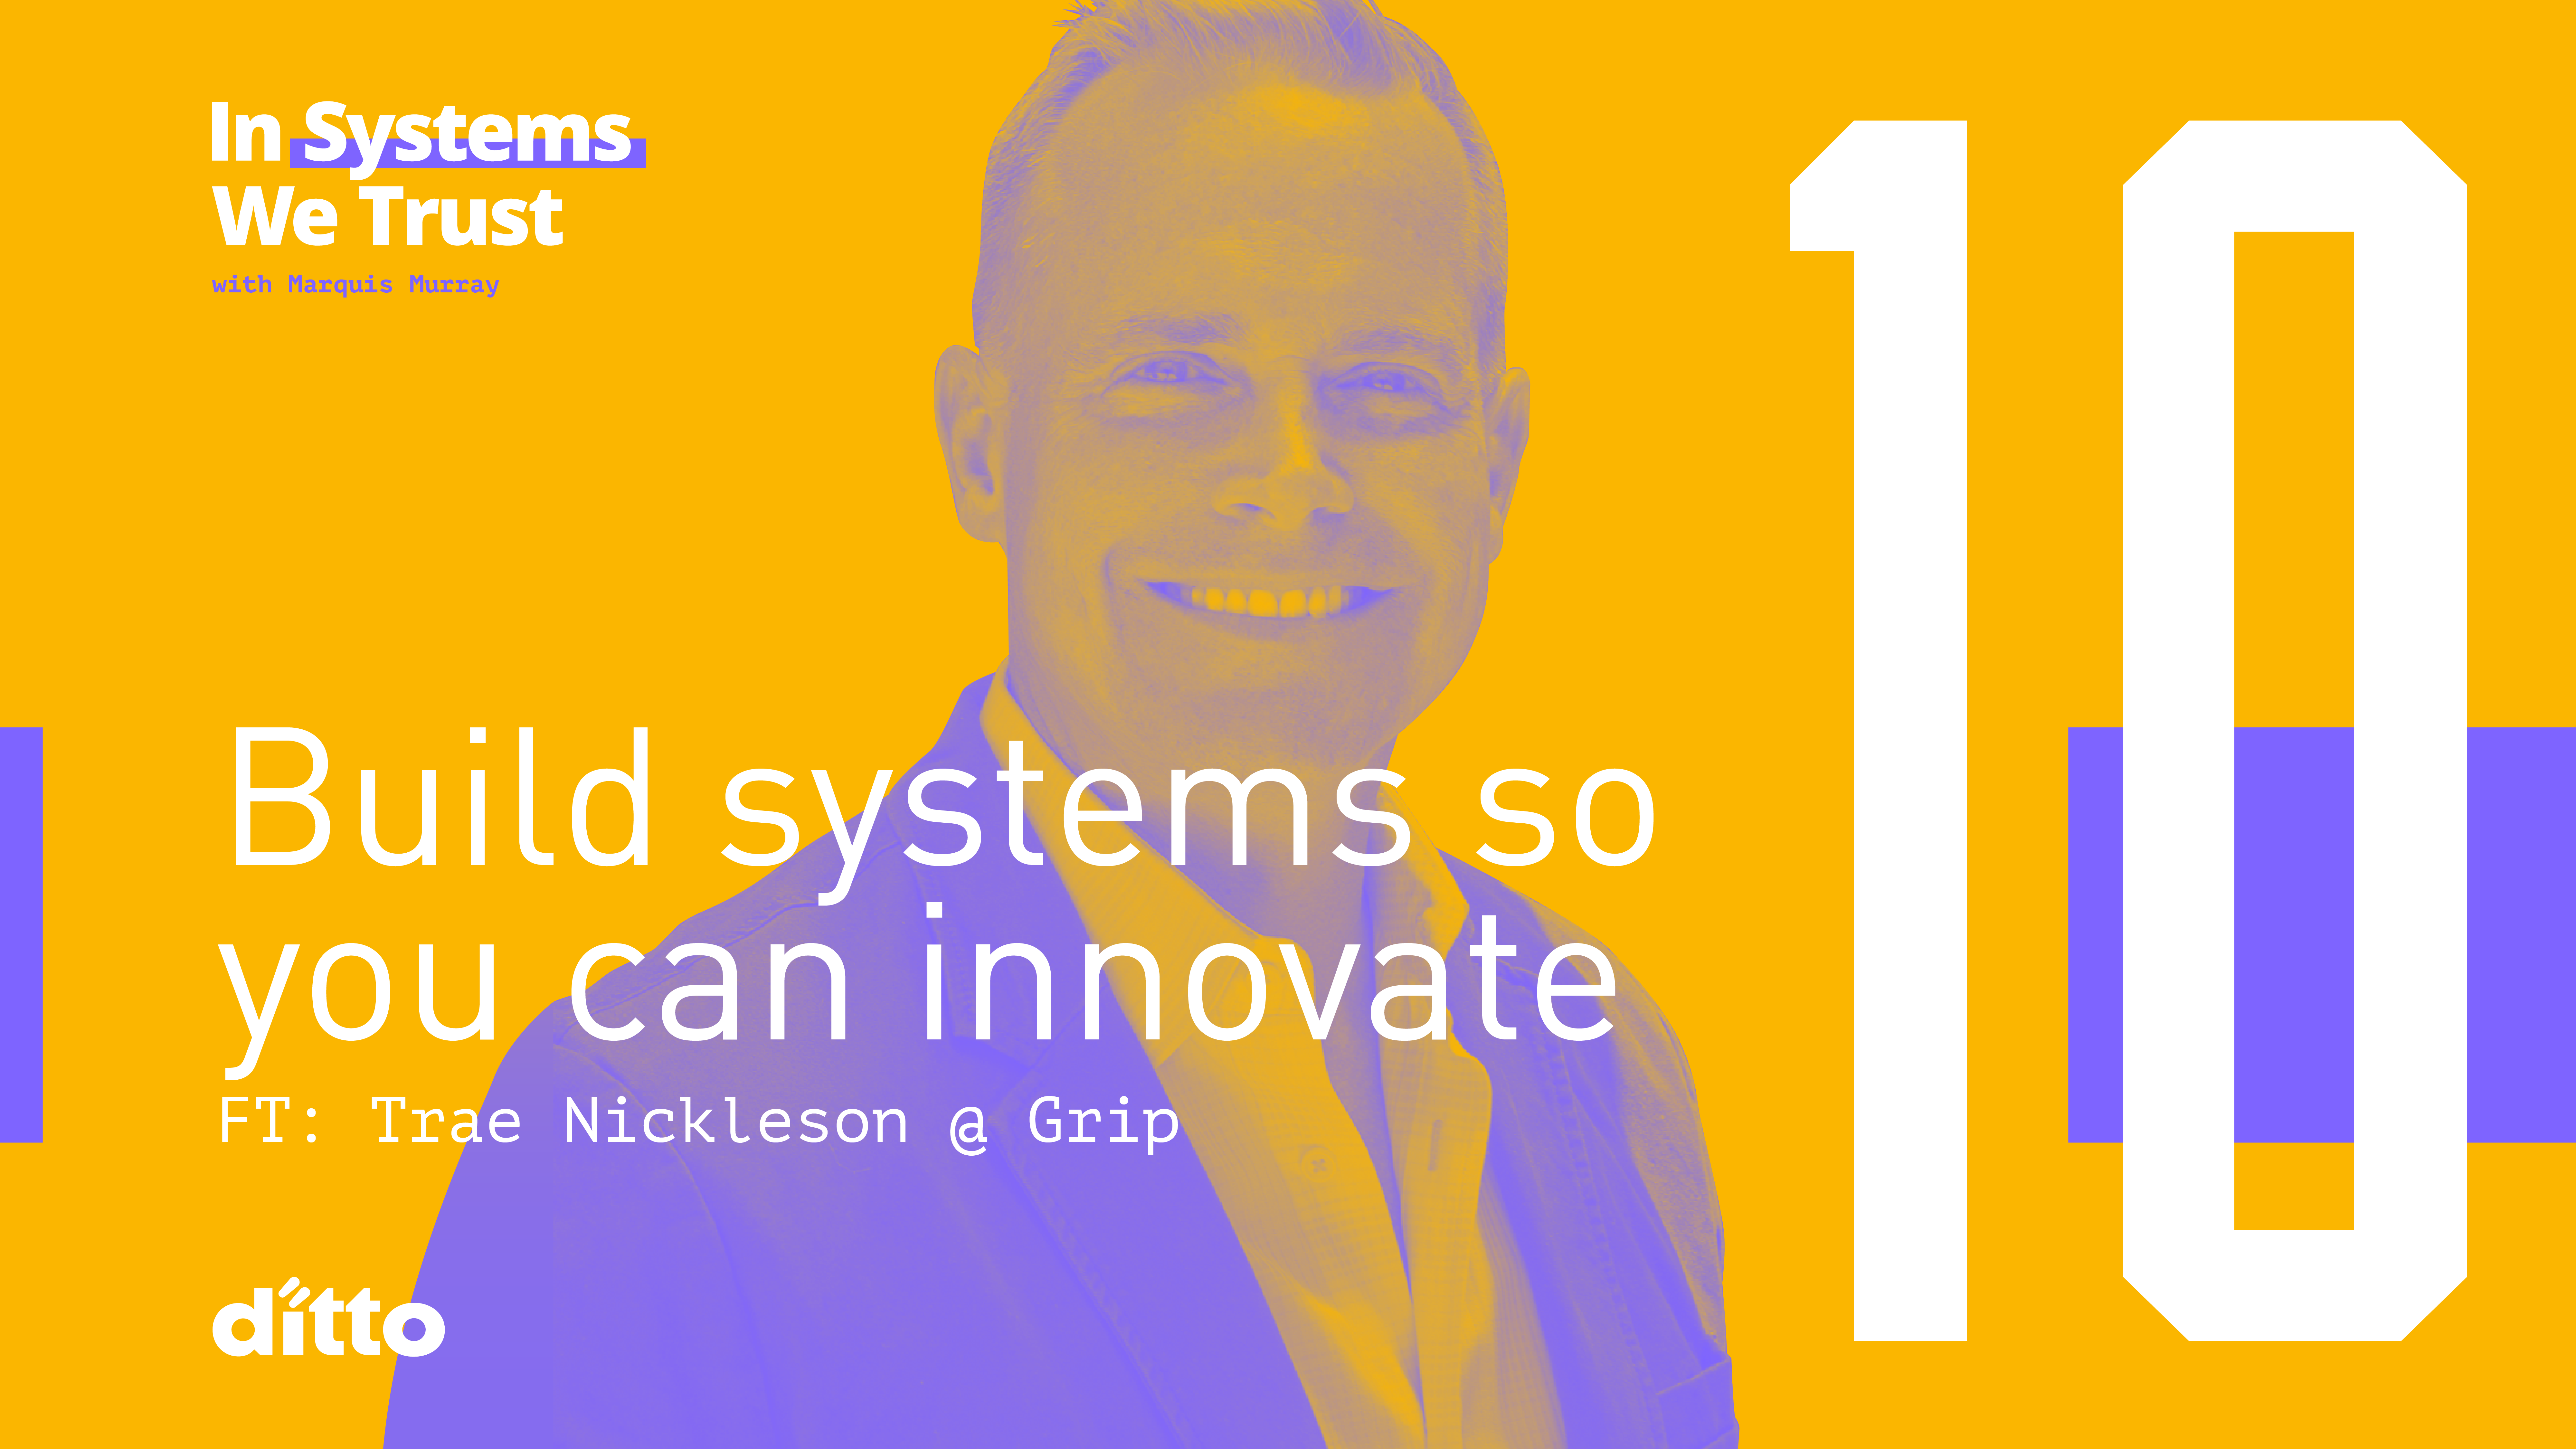 Trae Nickleson at Grip. Build systems to you can innovate.